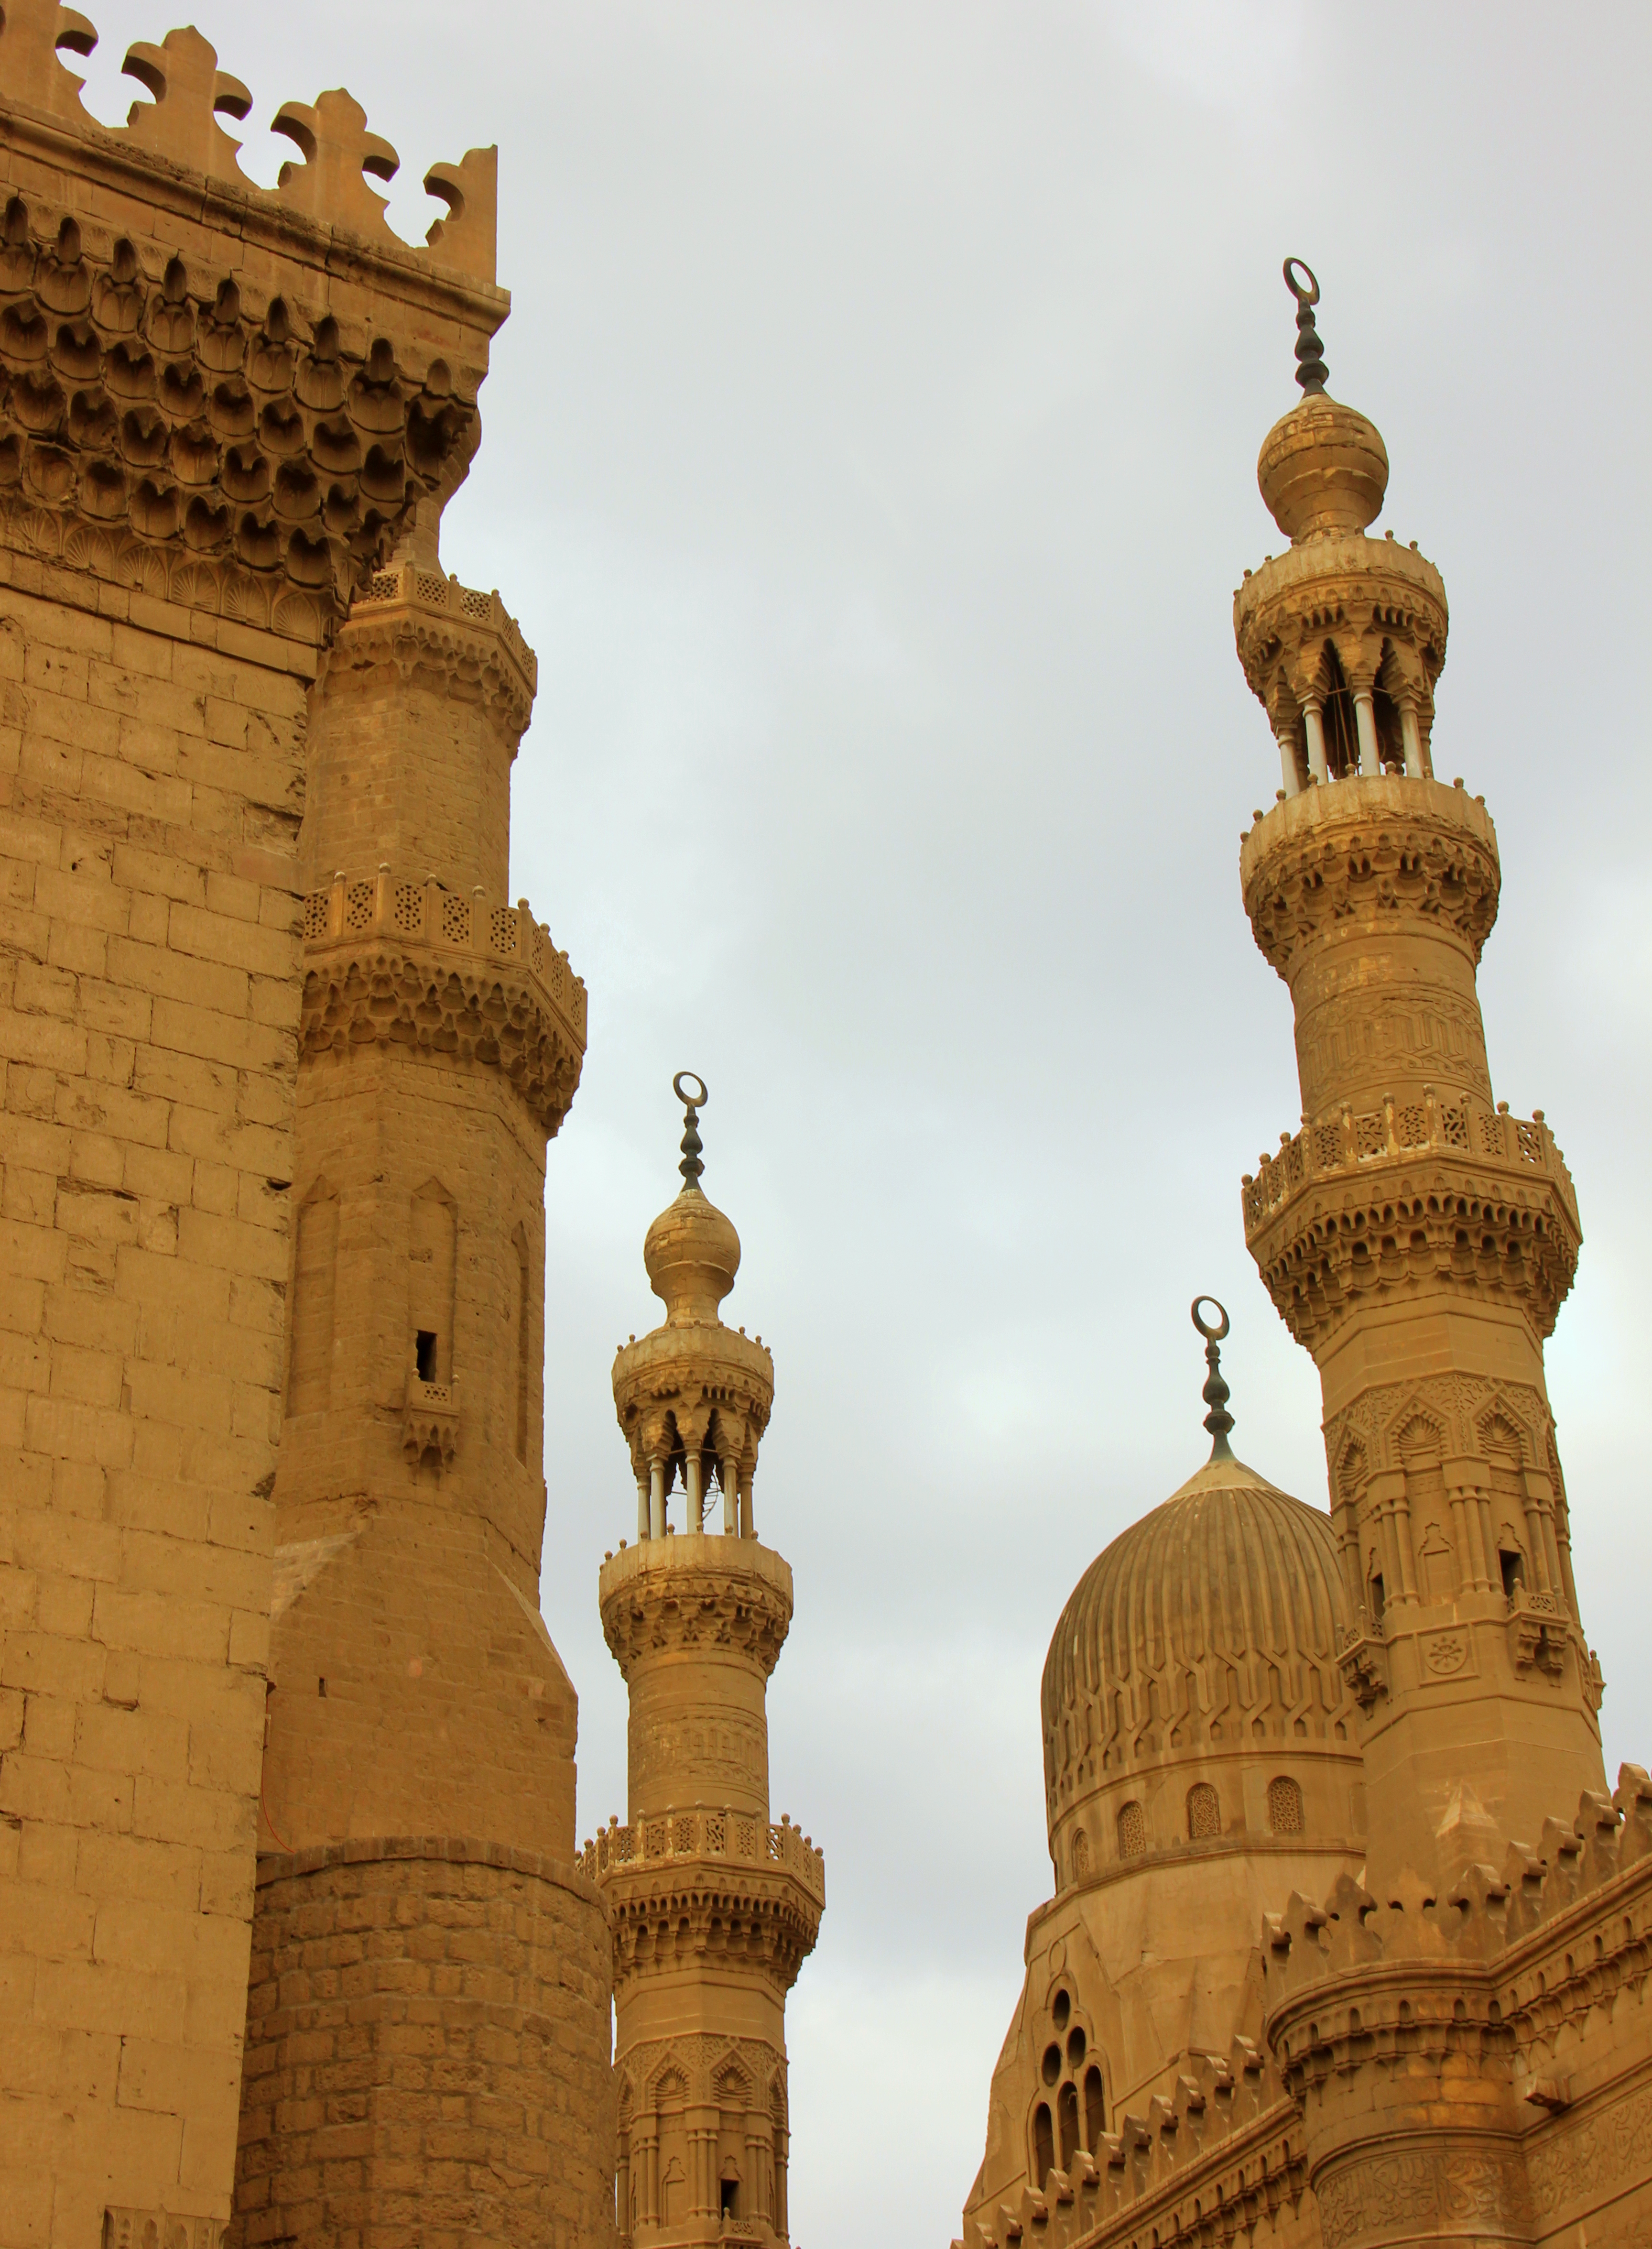 Details on the minarets of Sultan Hassan Mosque Madrassa